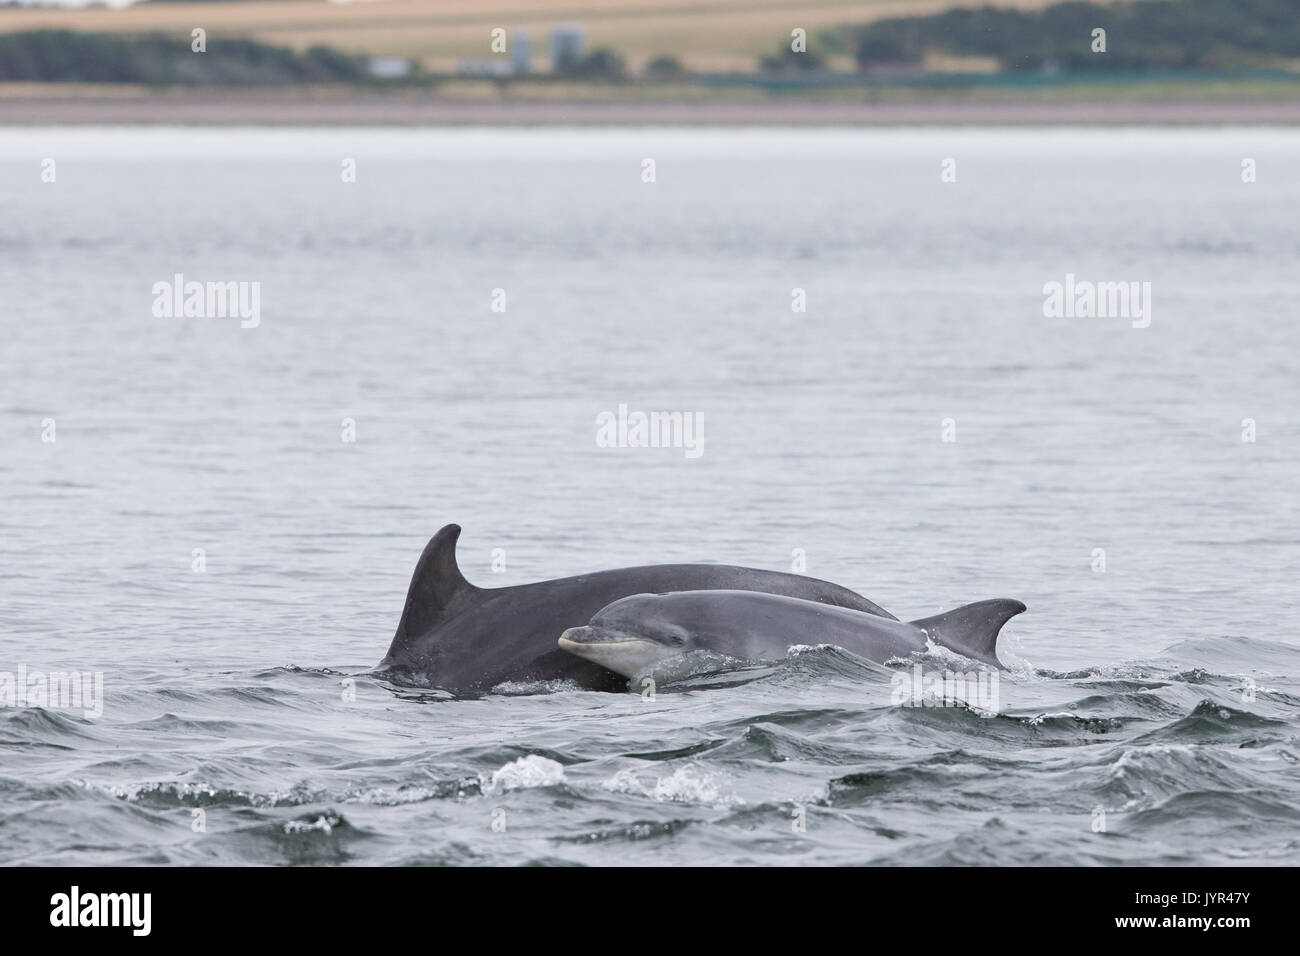 Scottish Bottlenose dolphin mother & youngster in the waters of the Moray Firth - Stock Image